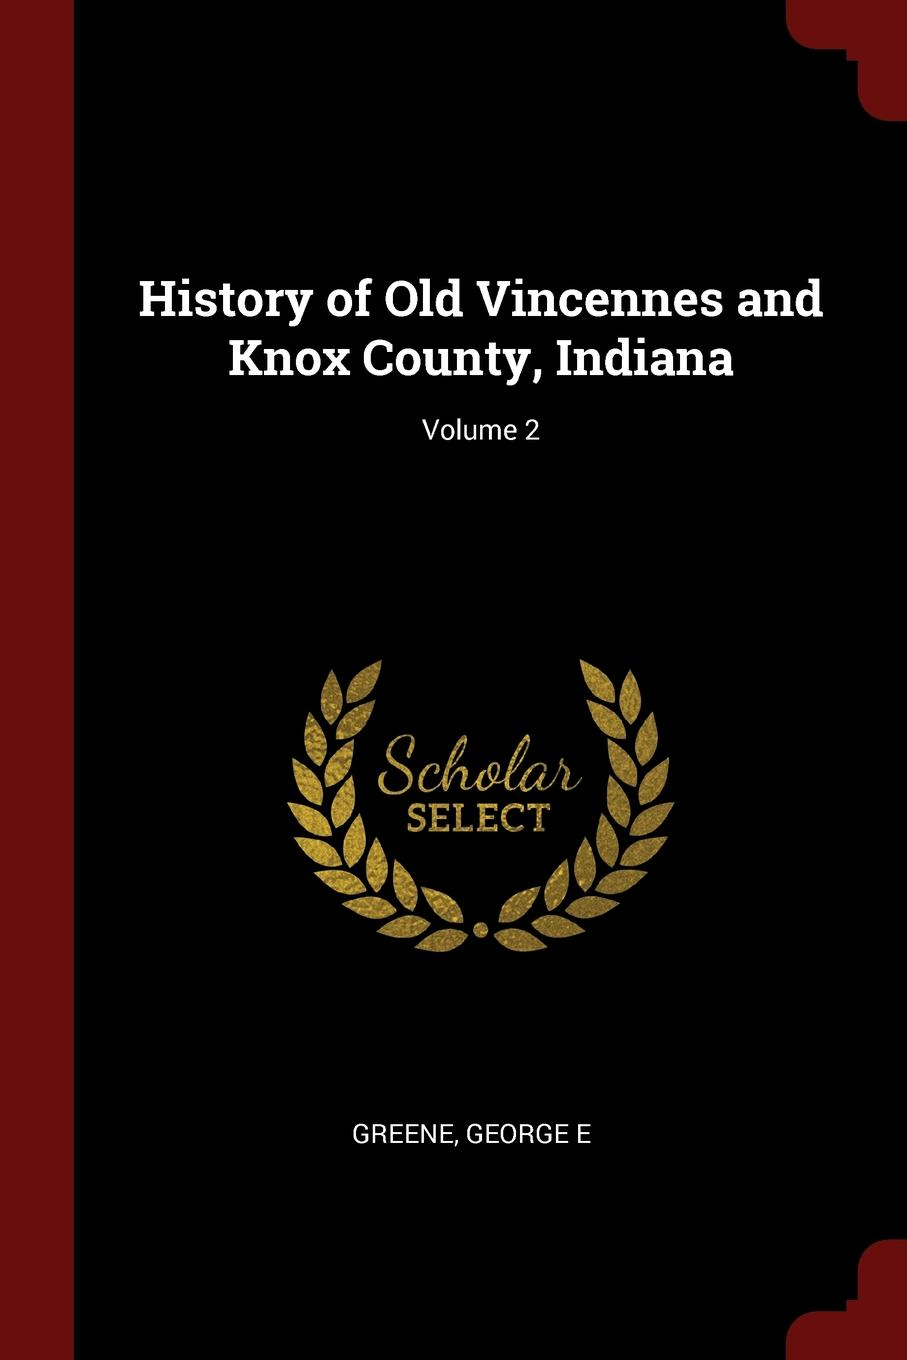 George E Greene History of Old Vincennes and Knox County, Indiana; Volume 2